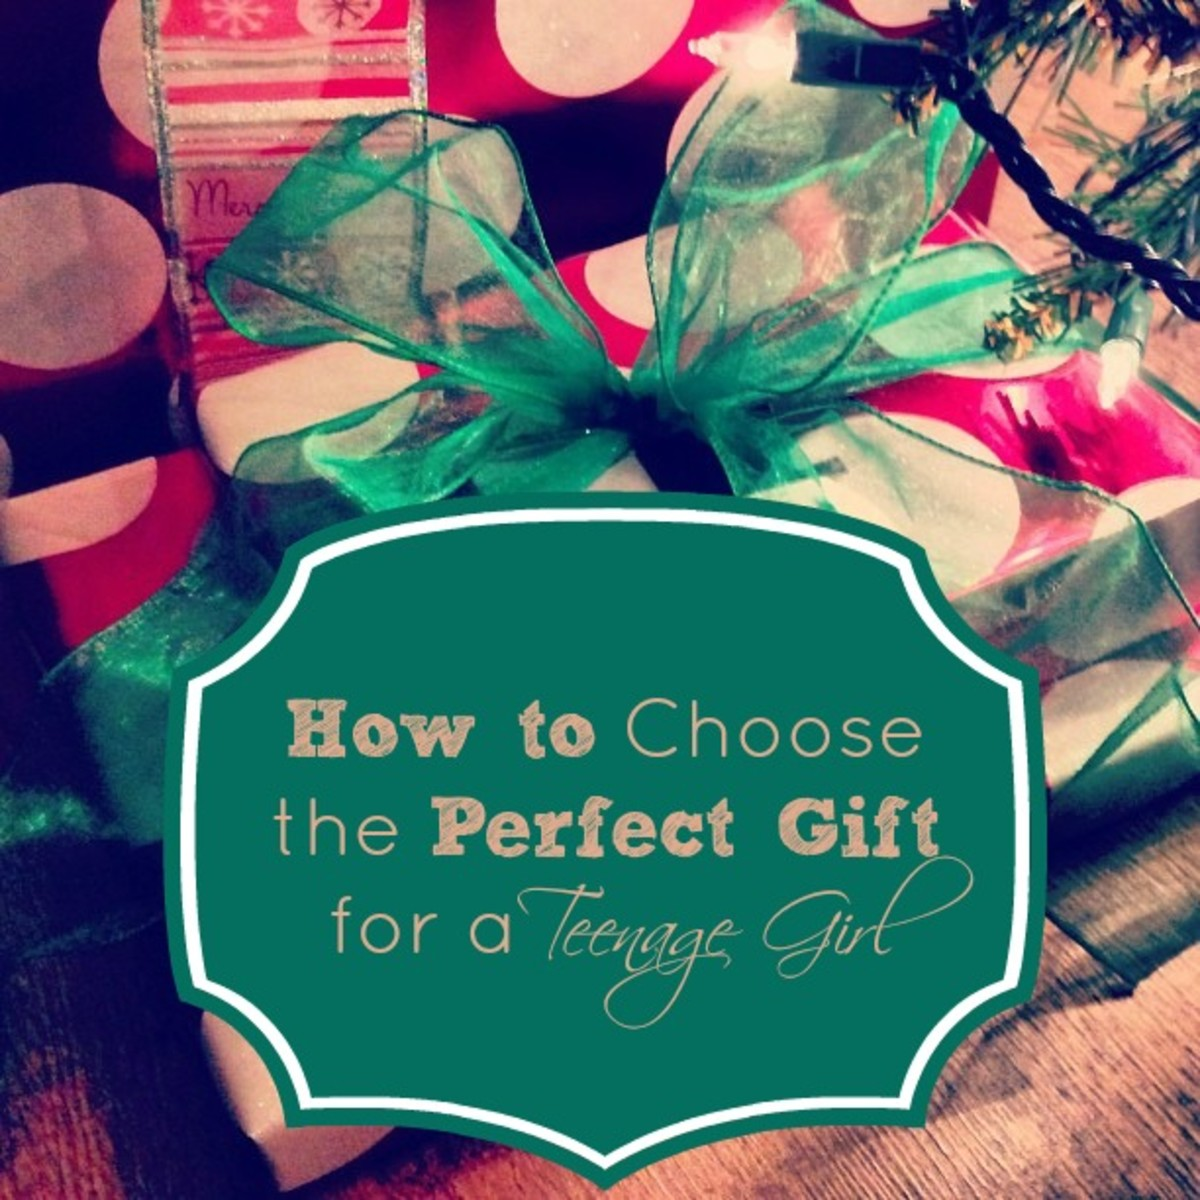 Are you looking for a great gift for a teenage girl? This guide will help you choose something perfect for the teen girl in your life!